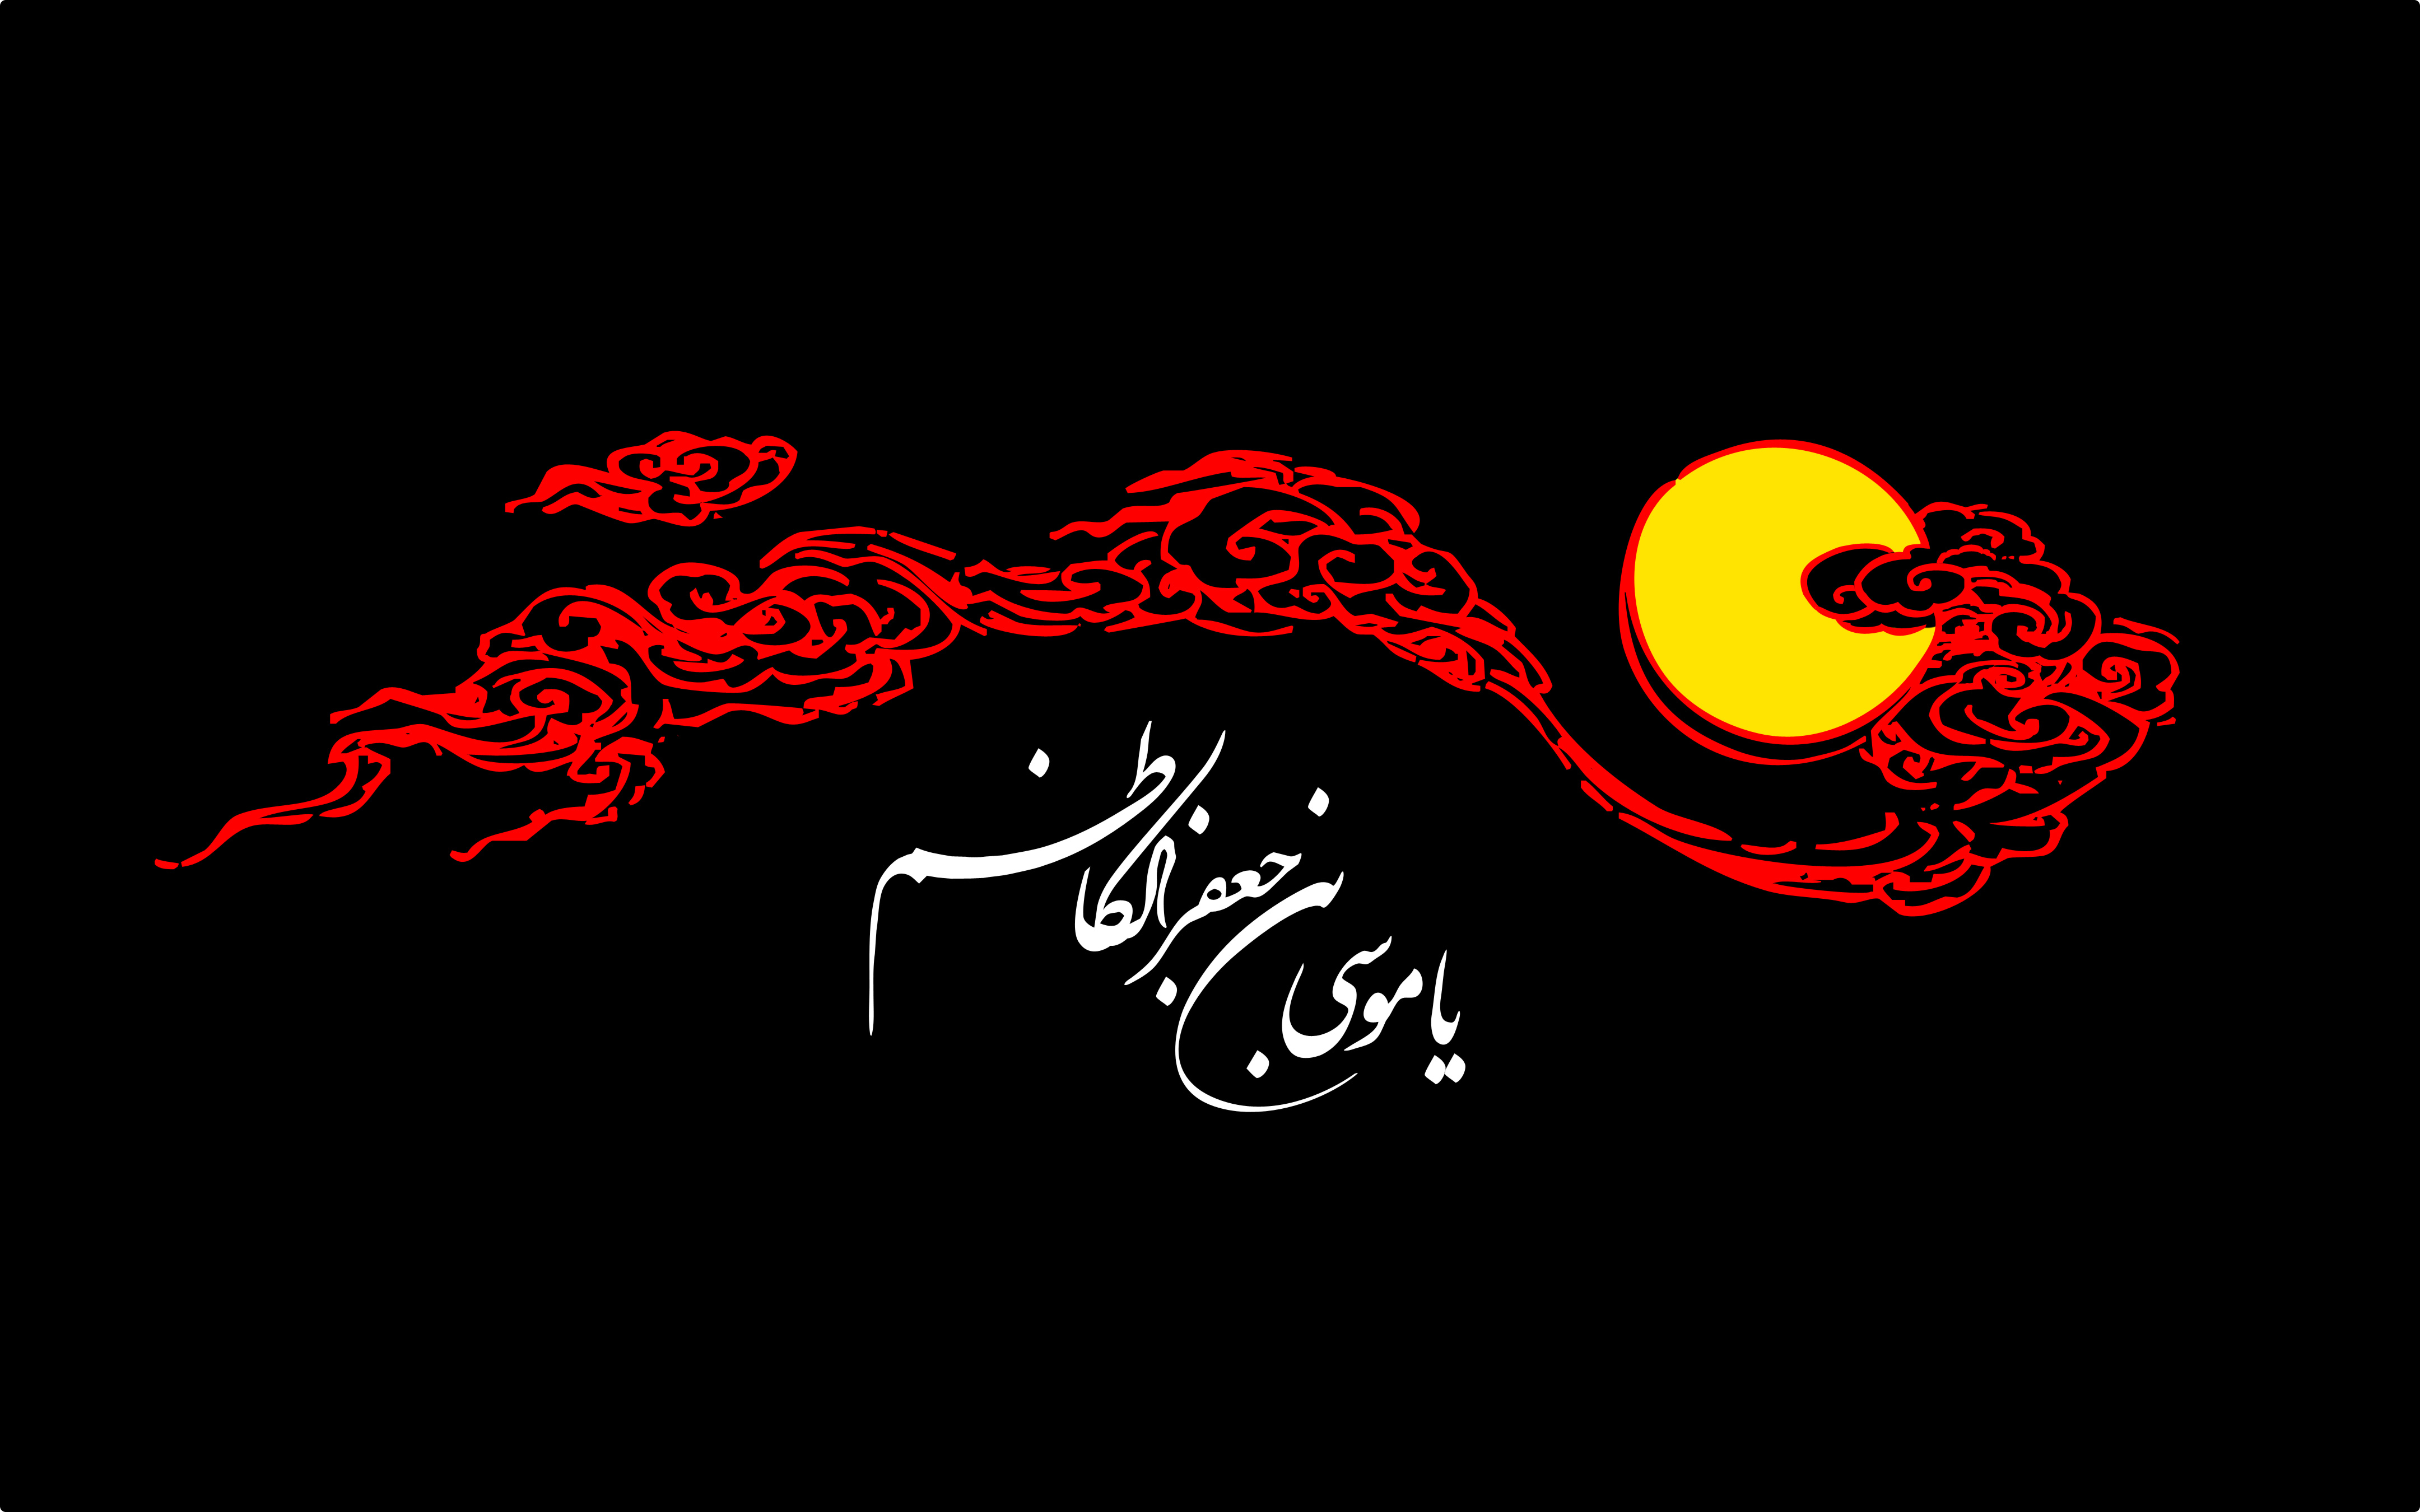 shia wallpapers islam - photo #5